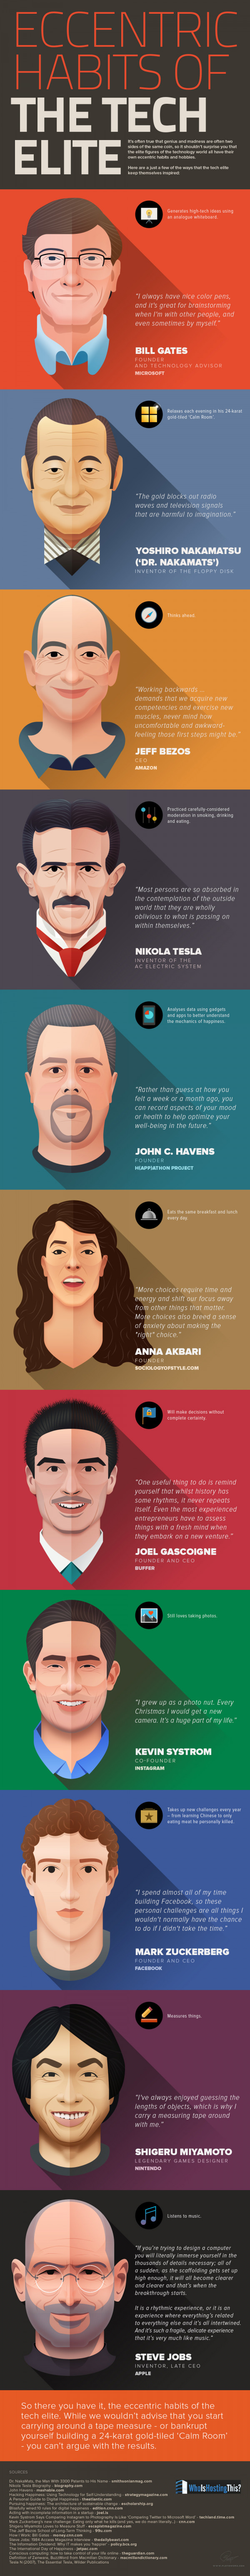 Eccentric habits of the tech elite - infographic